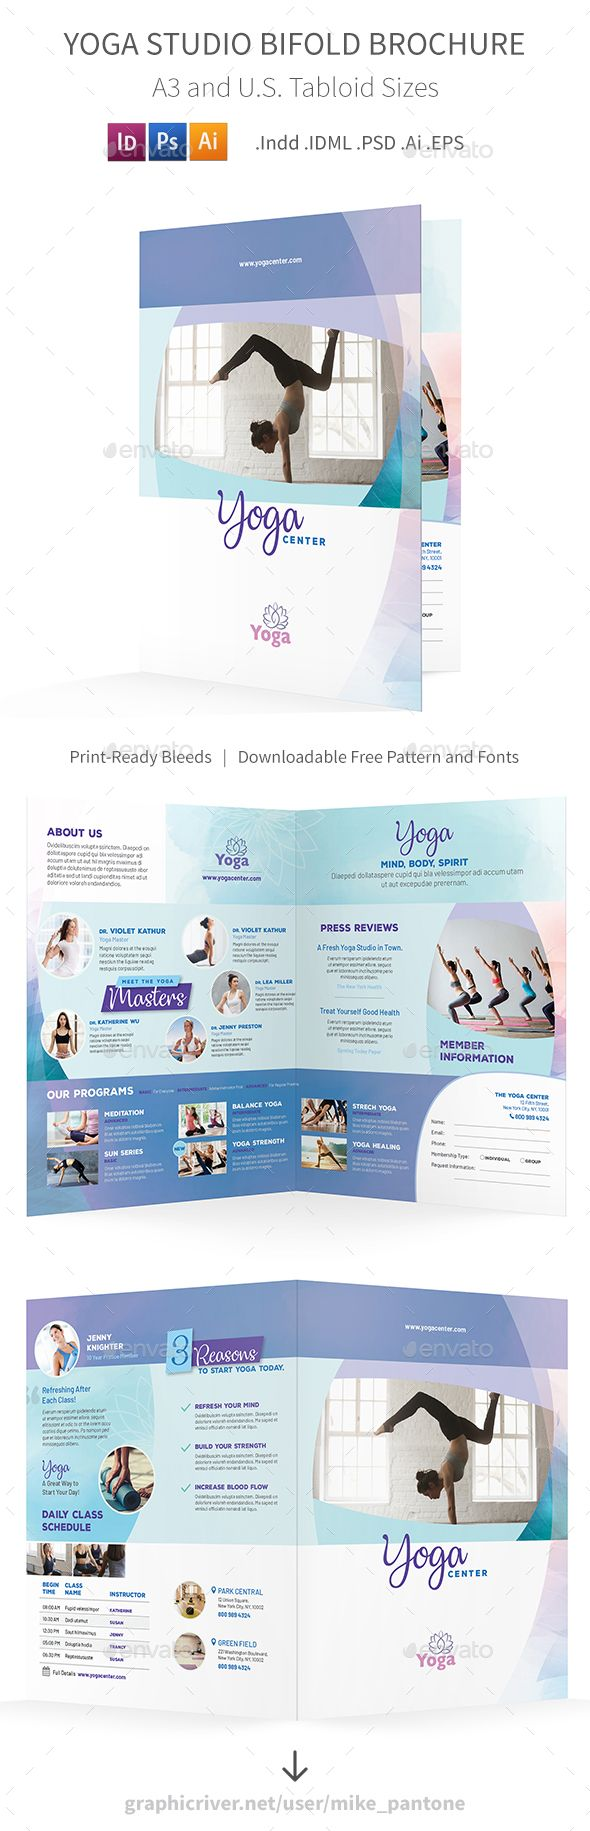 yoga studio bifold halffold brochure template psd vector eps indesign indd ai illustrator